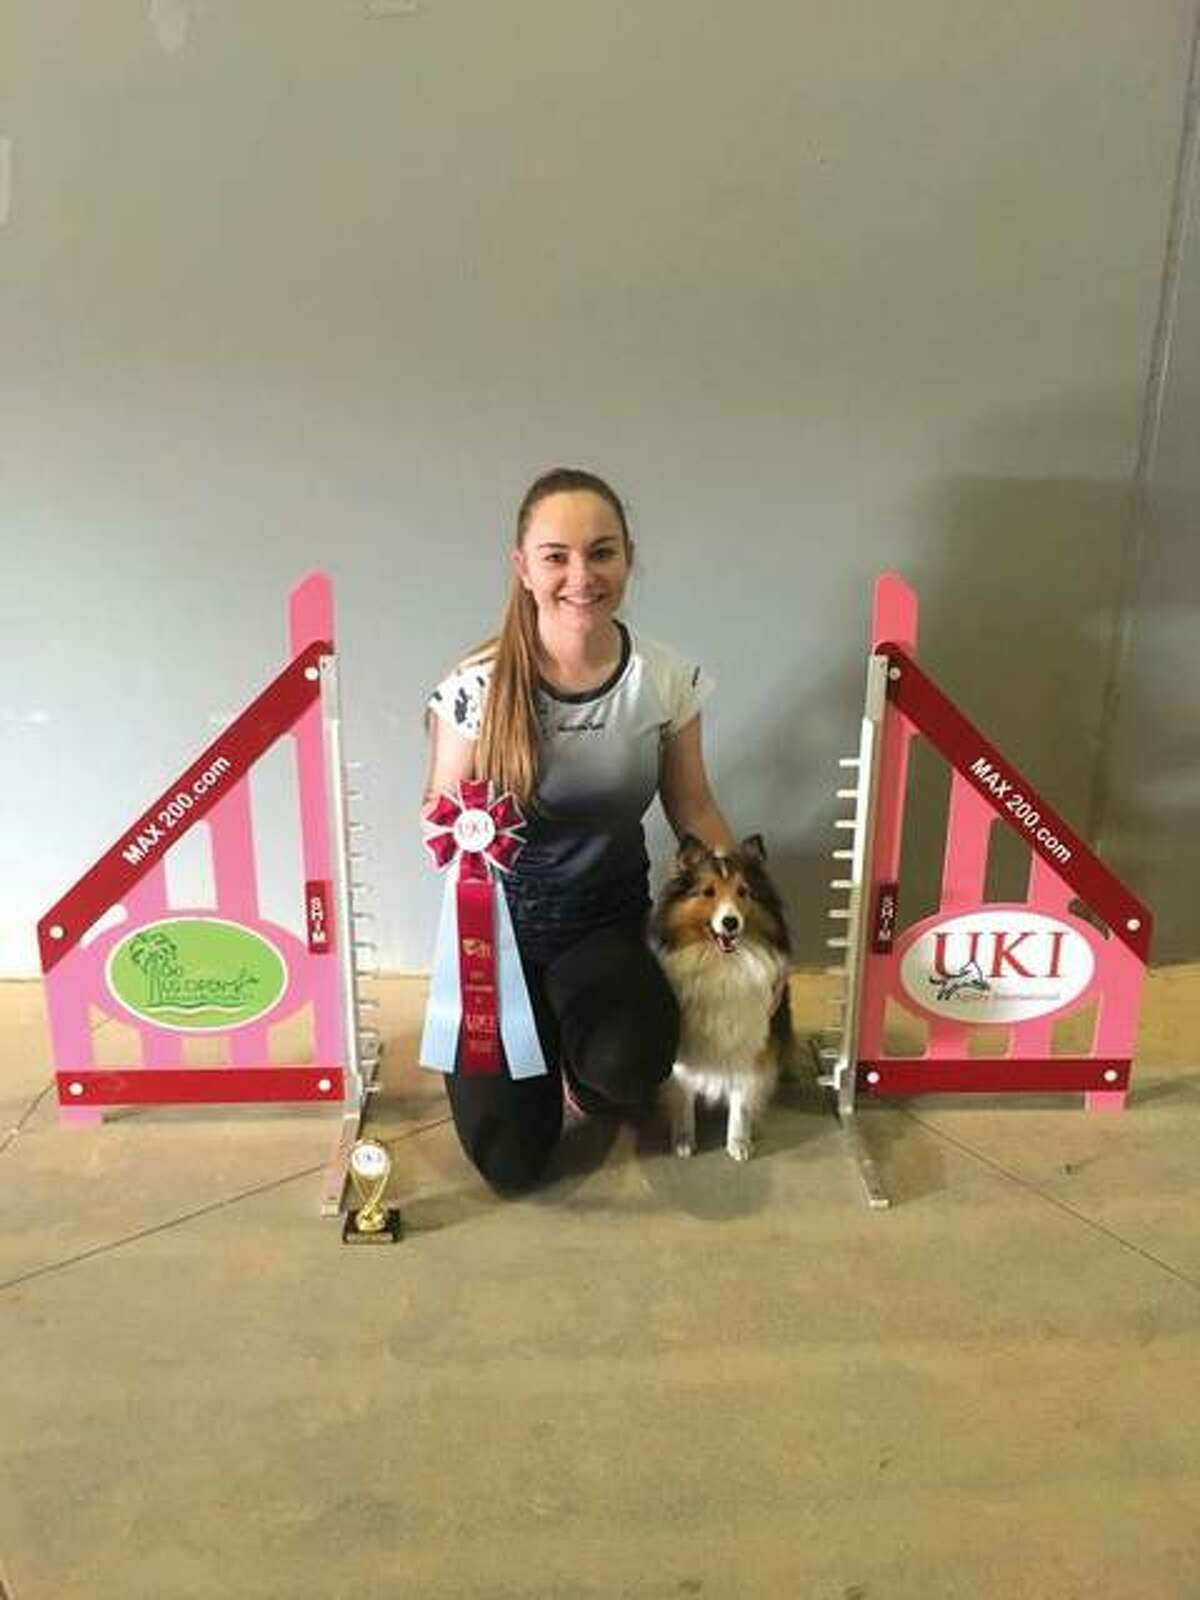 Lydia Carnes and her Shetland sheepdog, Bella, with one of the awards they have won.